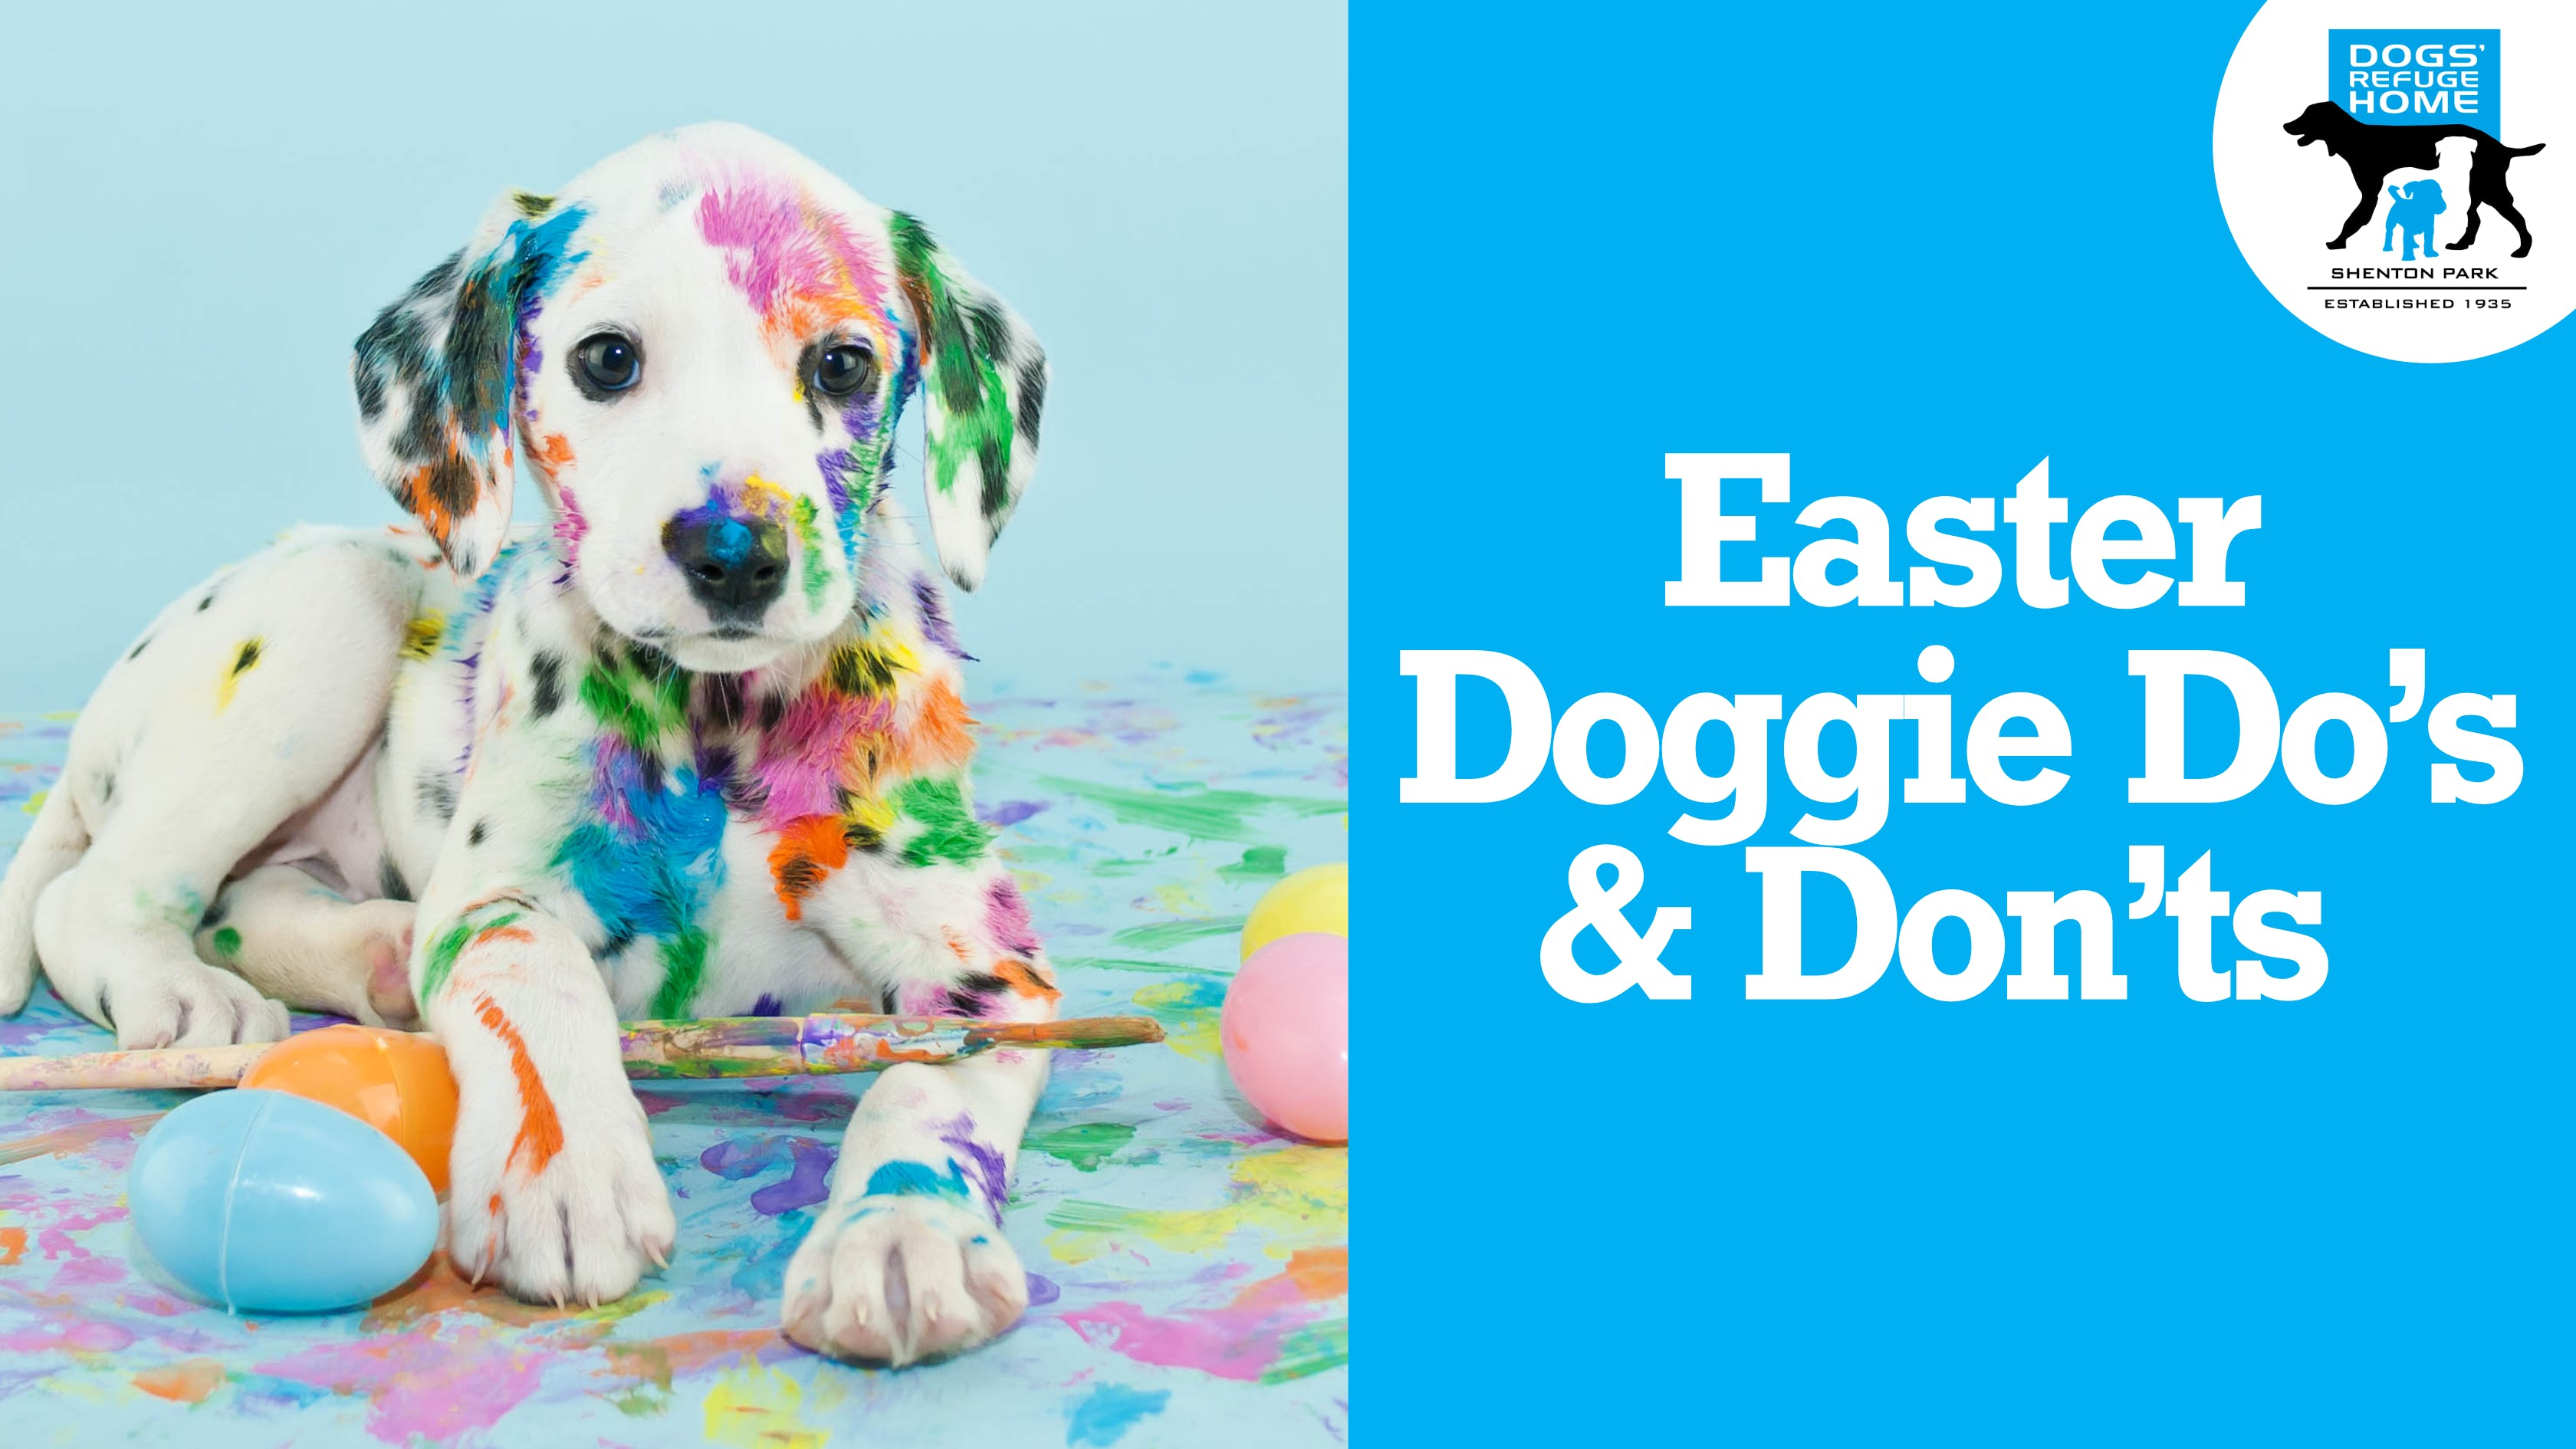 Easter Doggie Dos and Dont's